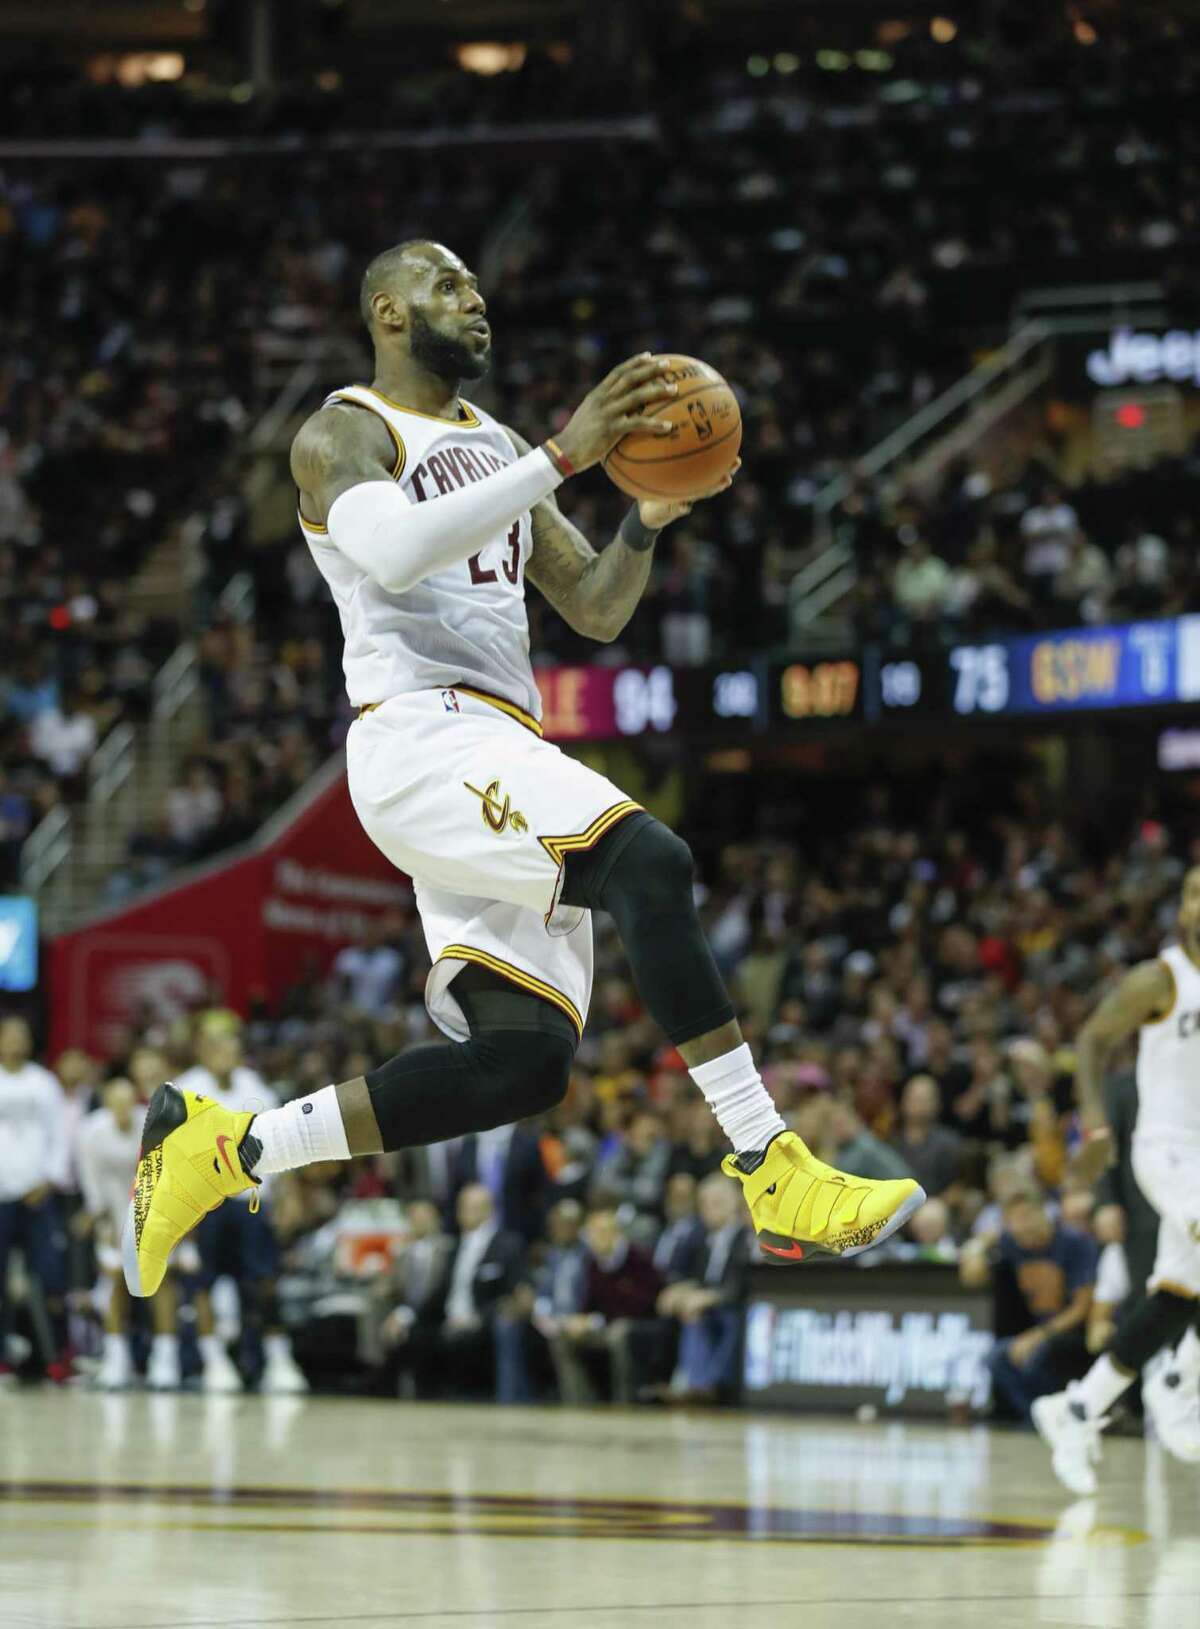 LeBron James knows how to get his team to the NBA Finals